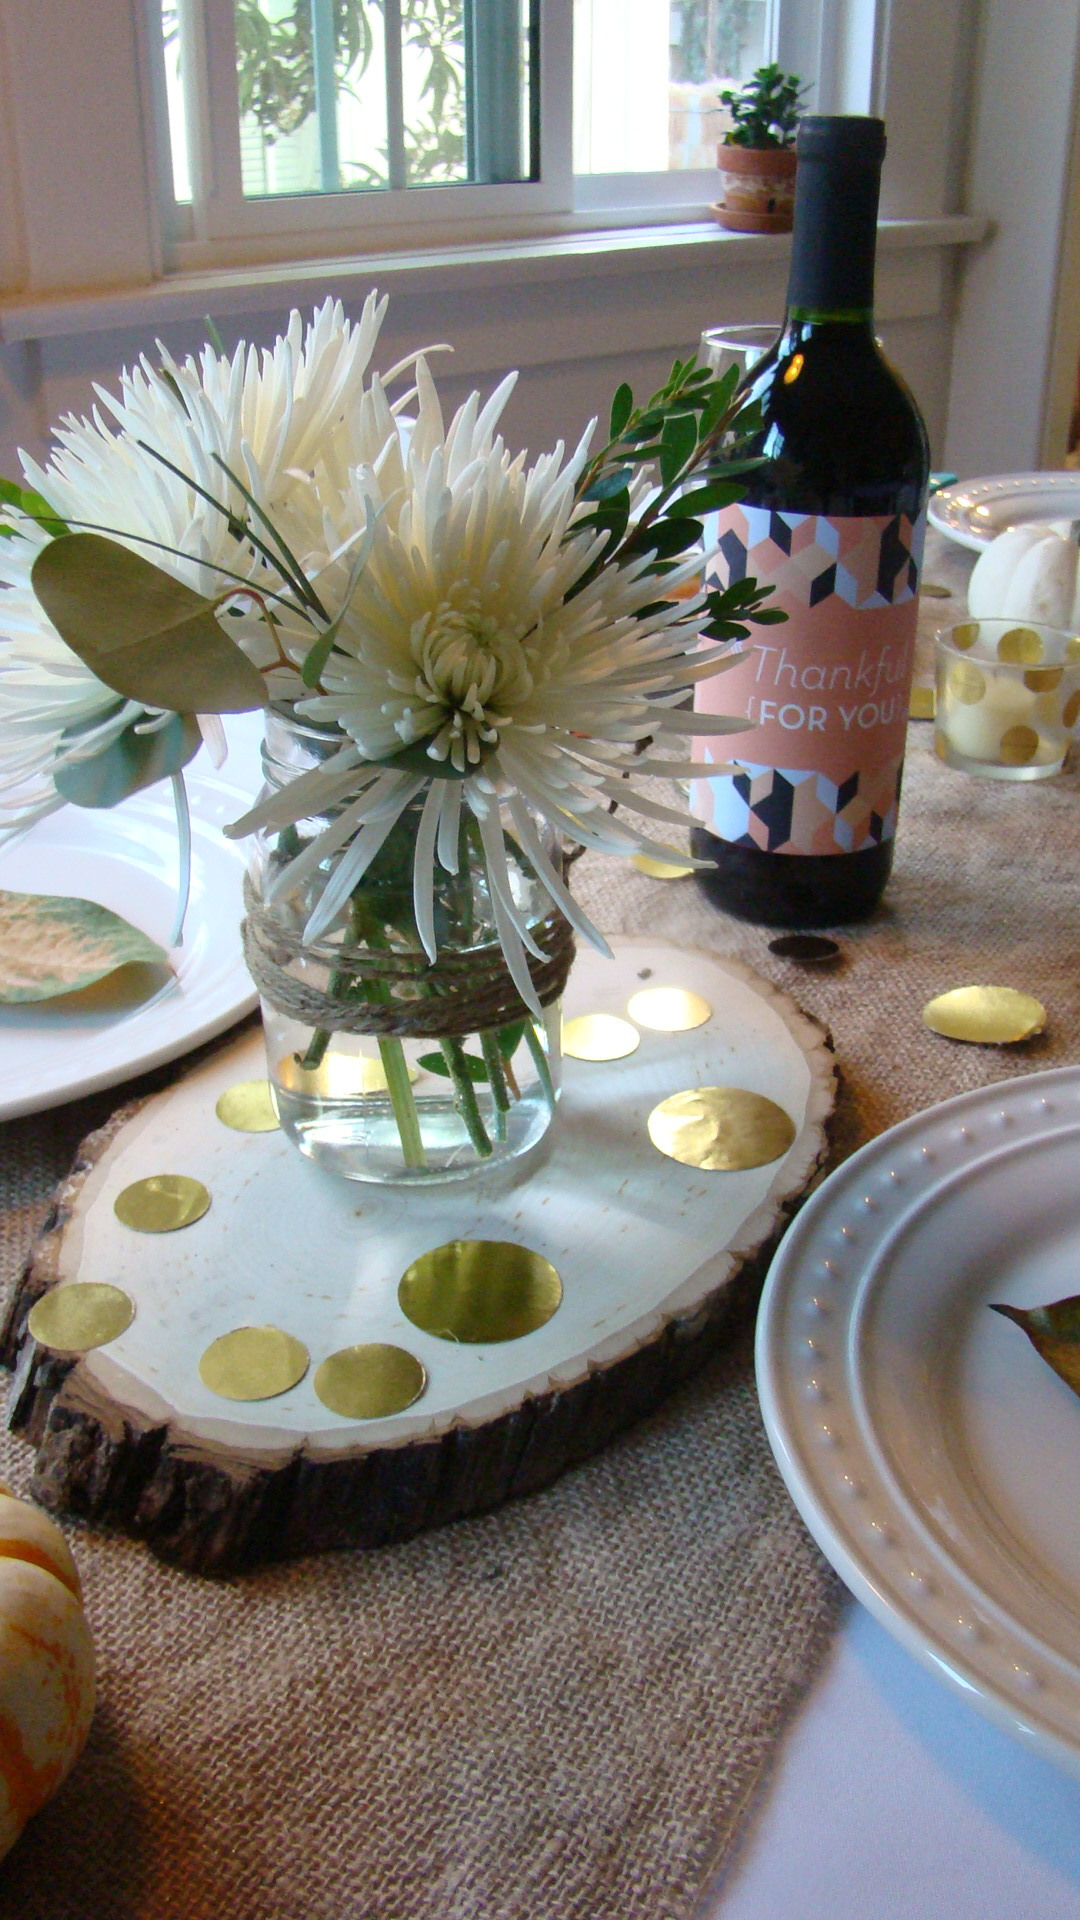 Simple floral arrangement.  Alex printed labels and covered the wine bottles, clever!